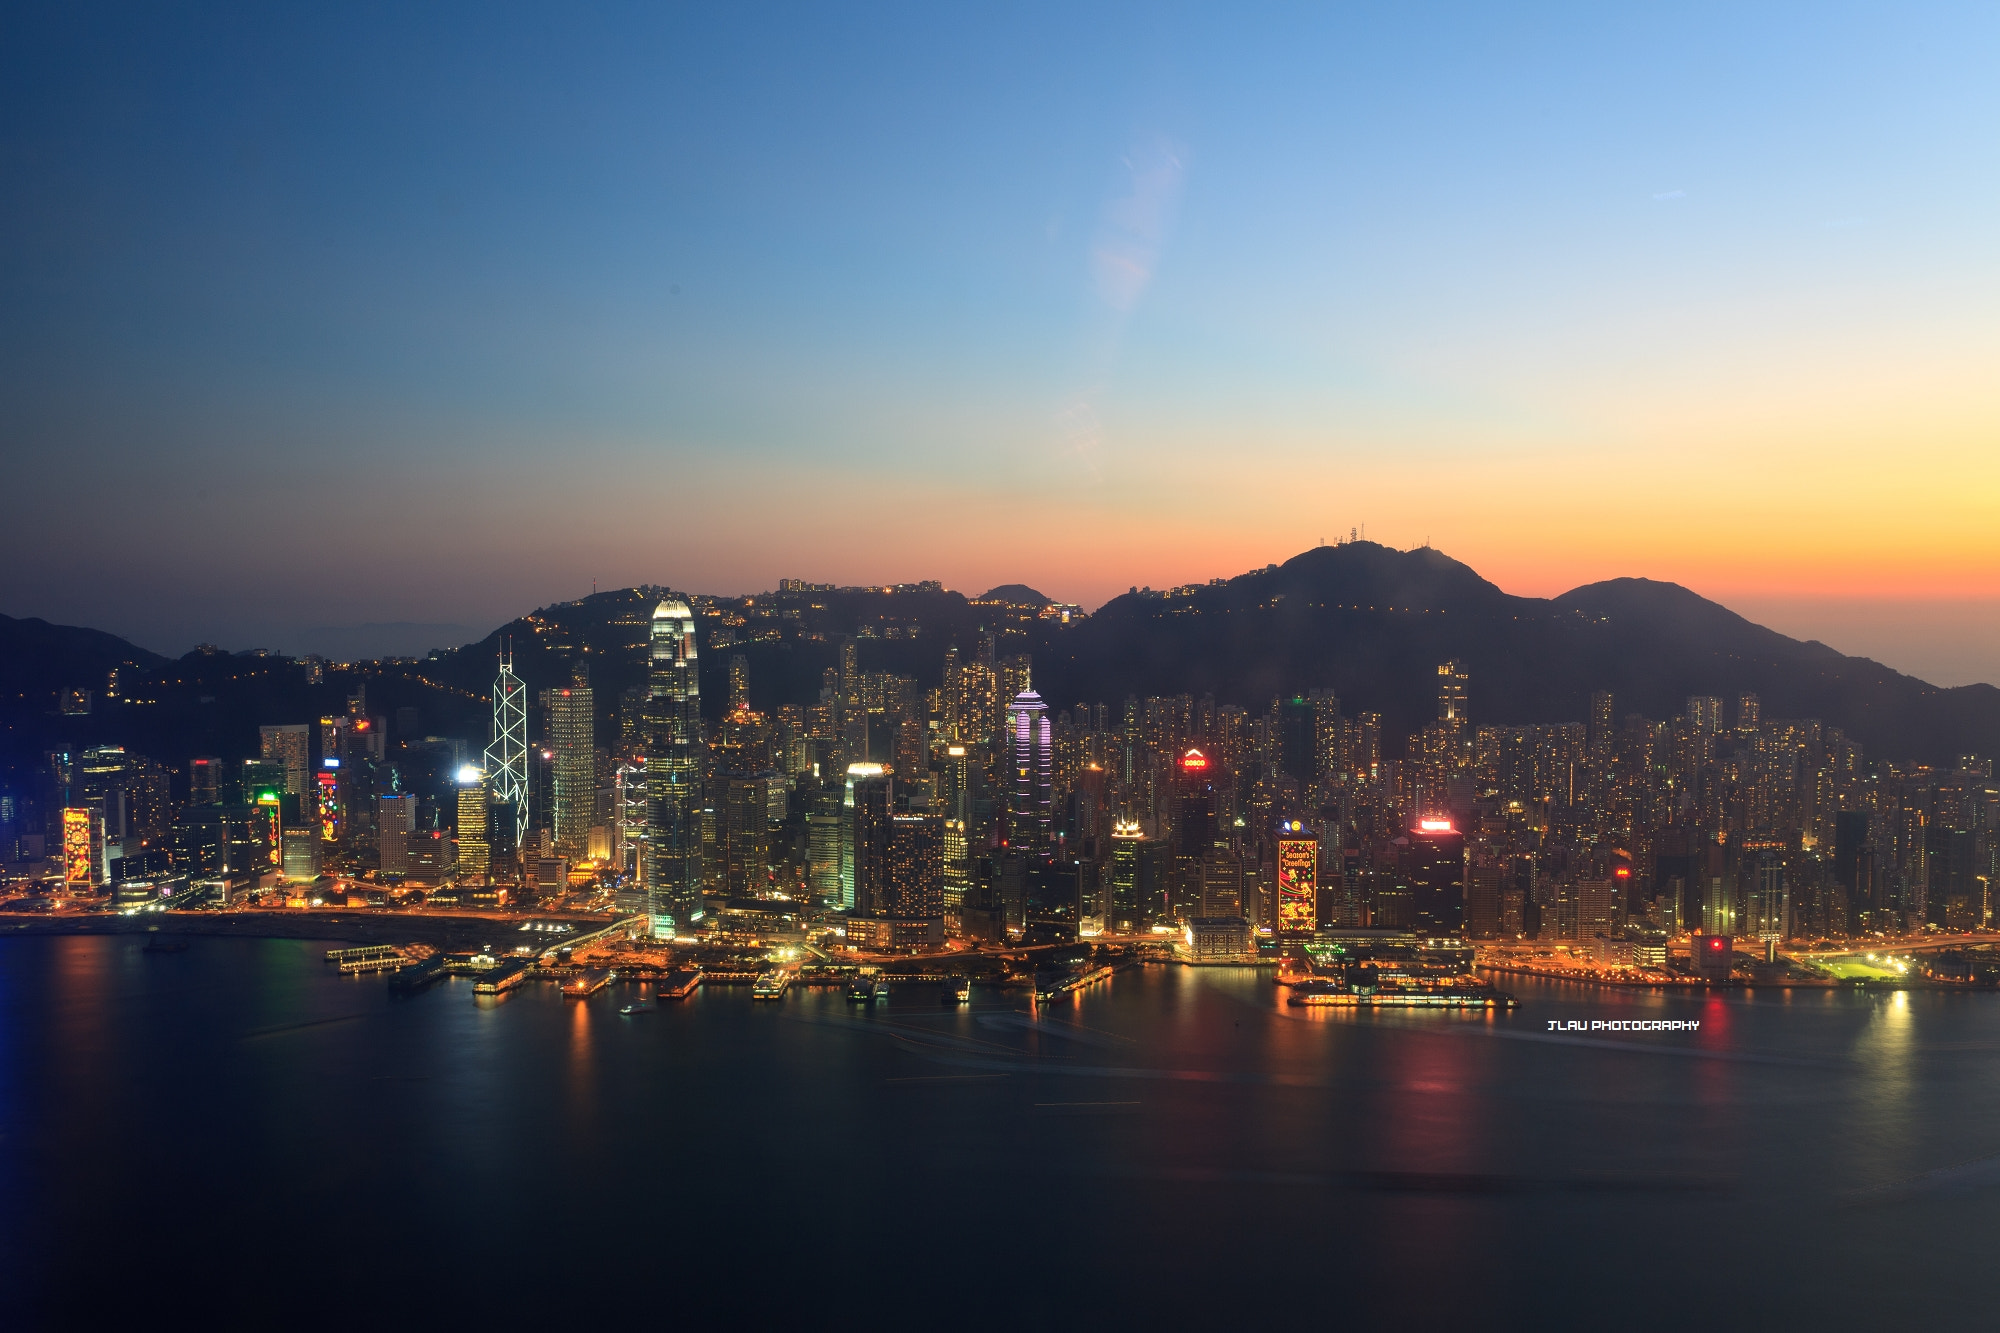 Photograph After sunset, Hong Kong by JLau | HK on 500px